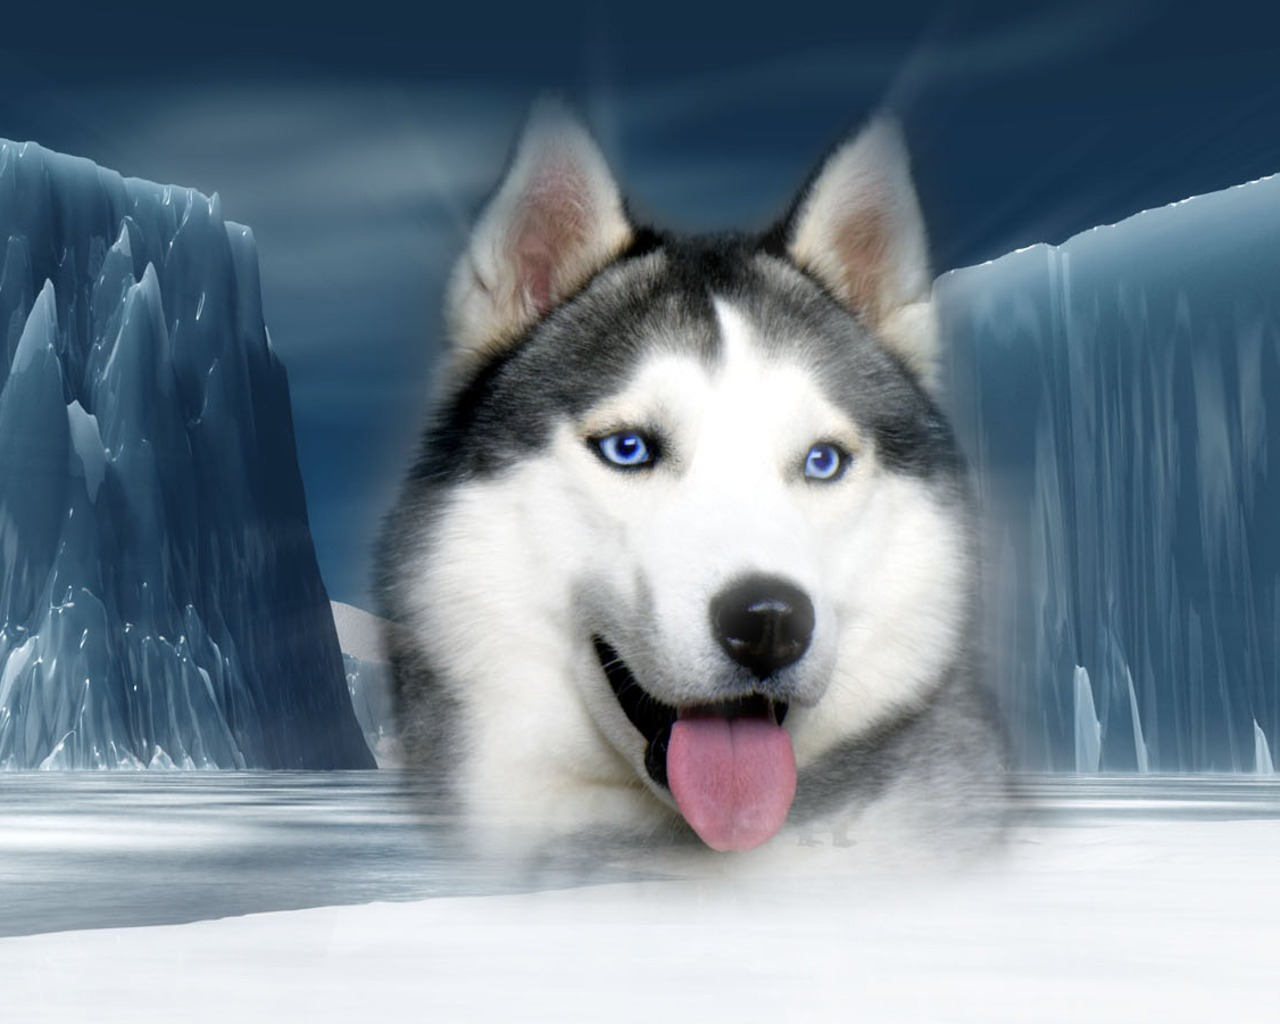 siberian Husky - Dogs Wallpaper (32502218) - Fanpop fanclubs